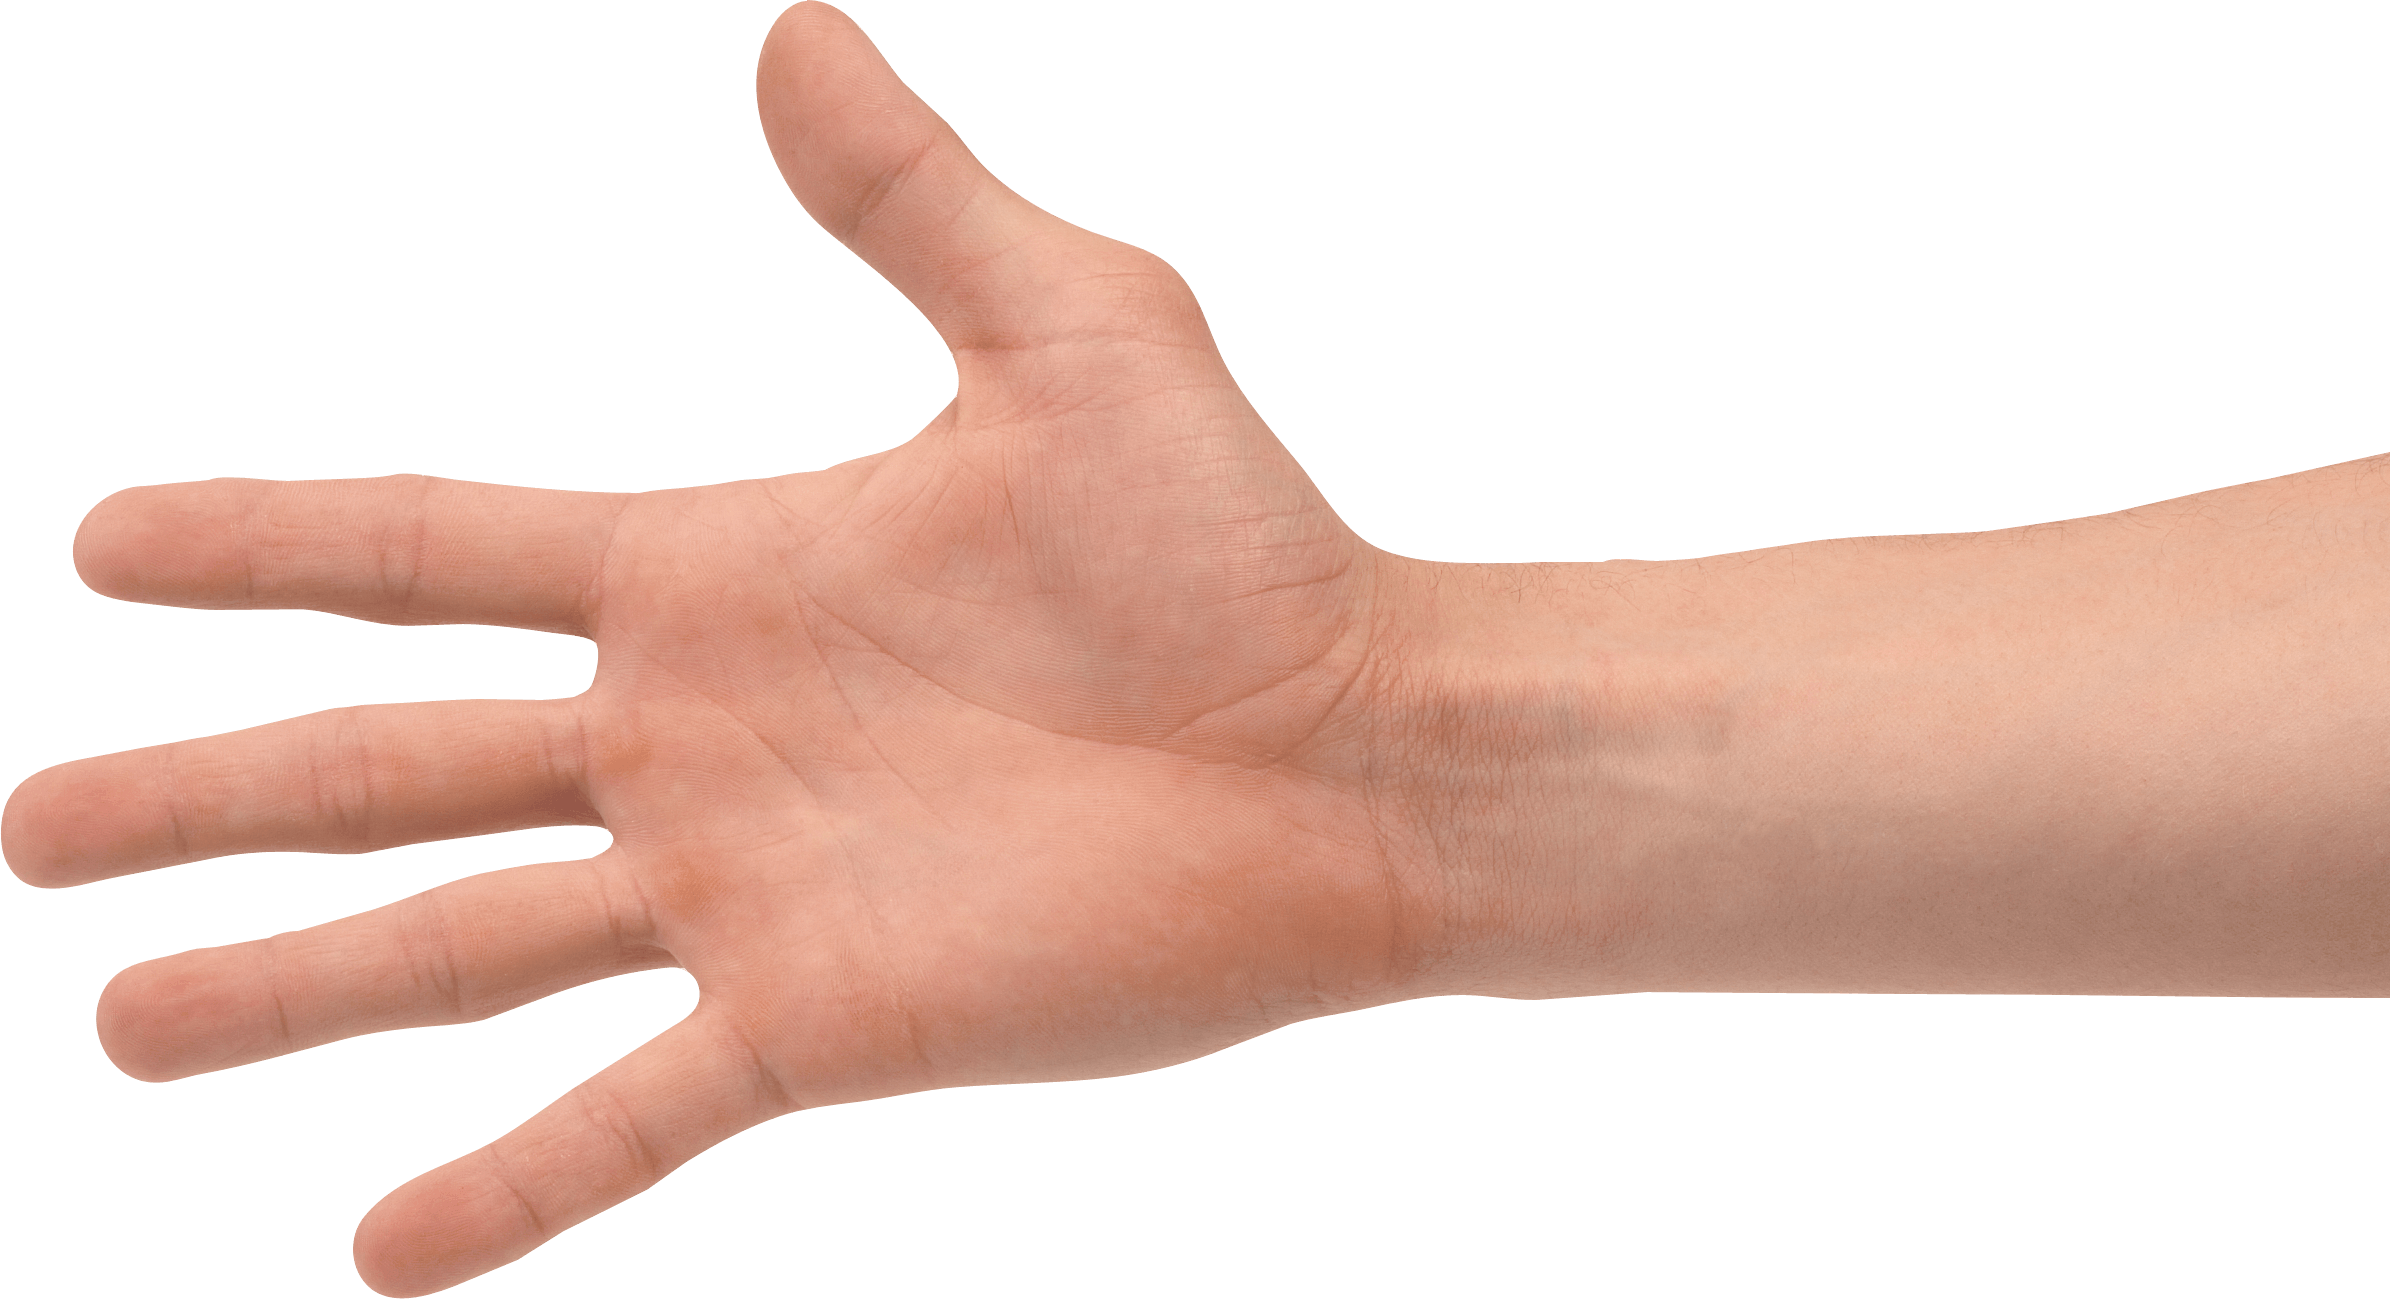 Transparent arms human. Hands png images pluspng